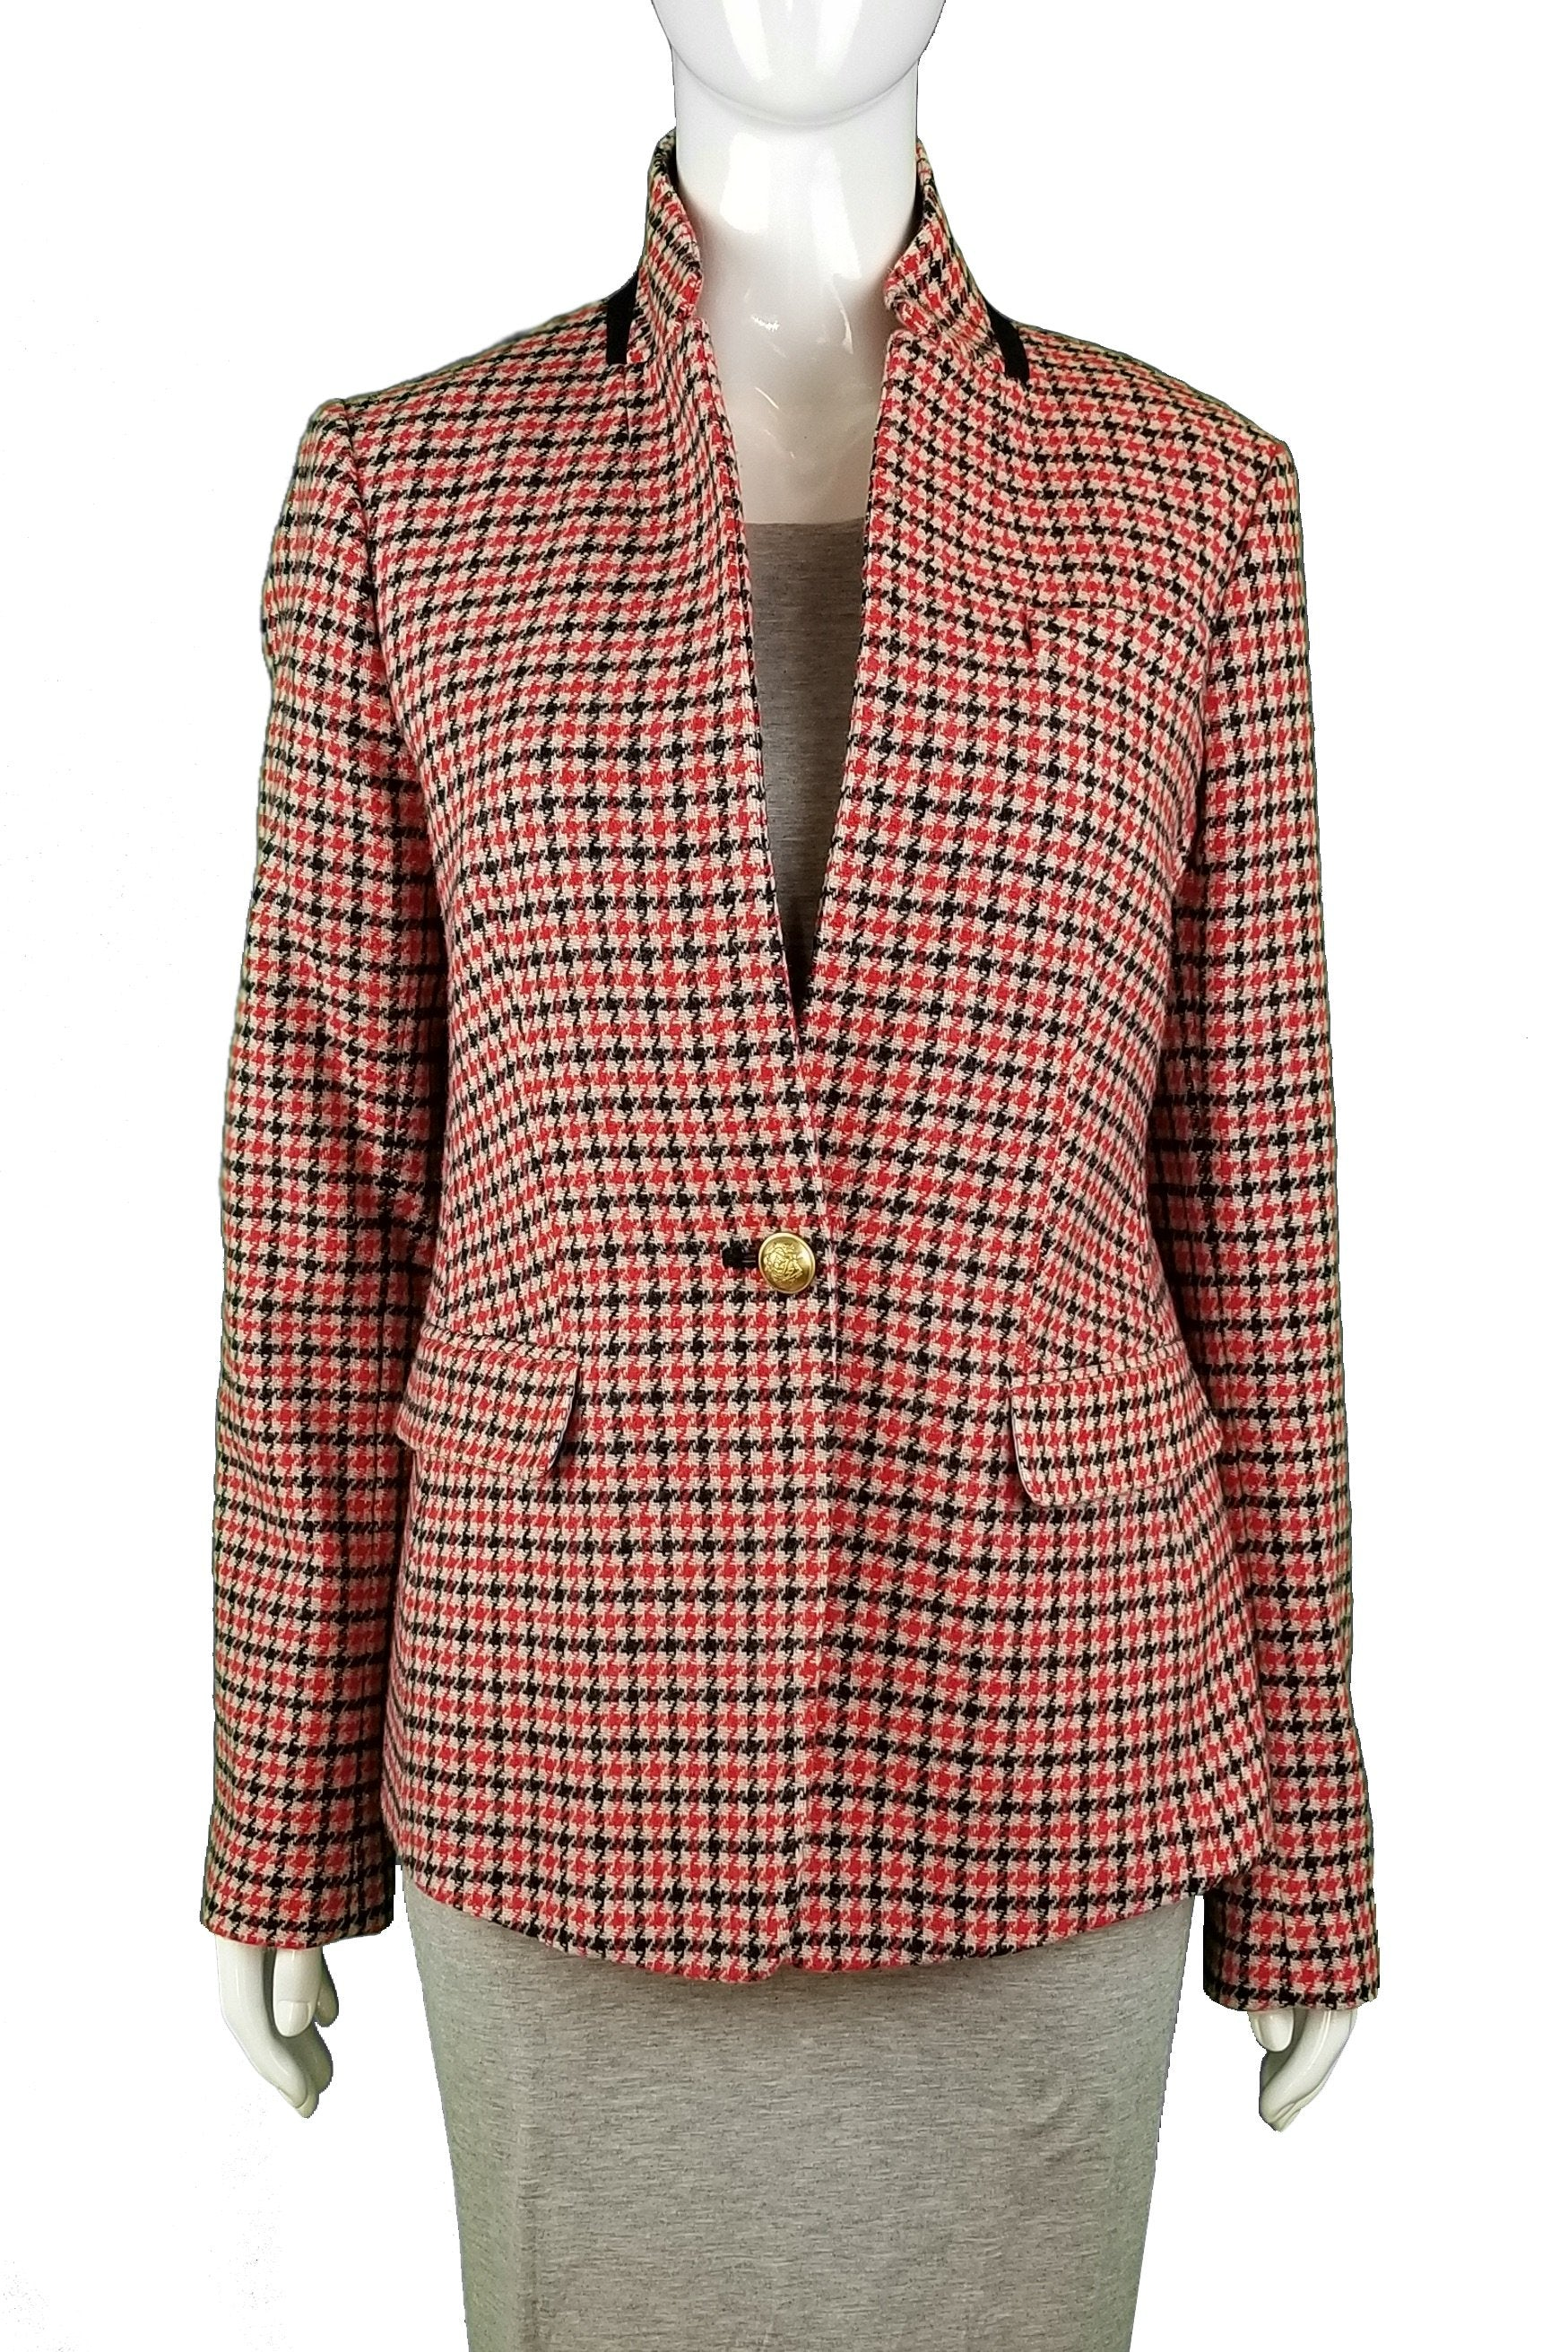 J Crew Plaid Wool Jacket, Any fashionable Boss Lady deserves an elegant and professional wool jacket., Red, 80% Wool, 20% Nylon, women's Jackets & Coats, women's Red Jackets & Coats, J Crew women's Jackets & Coats, women's jacket, women's thick jacket, women's fall jacket, women's spring jacket, women's plaid blazer